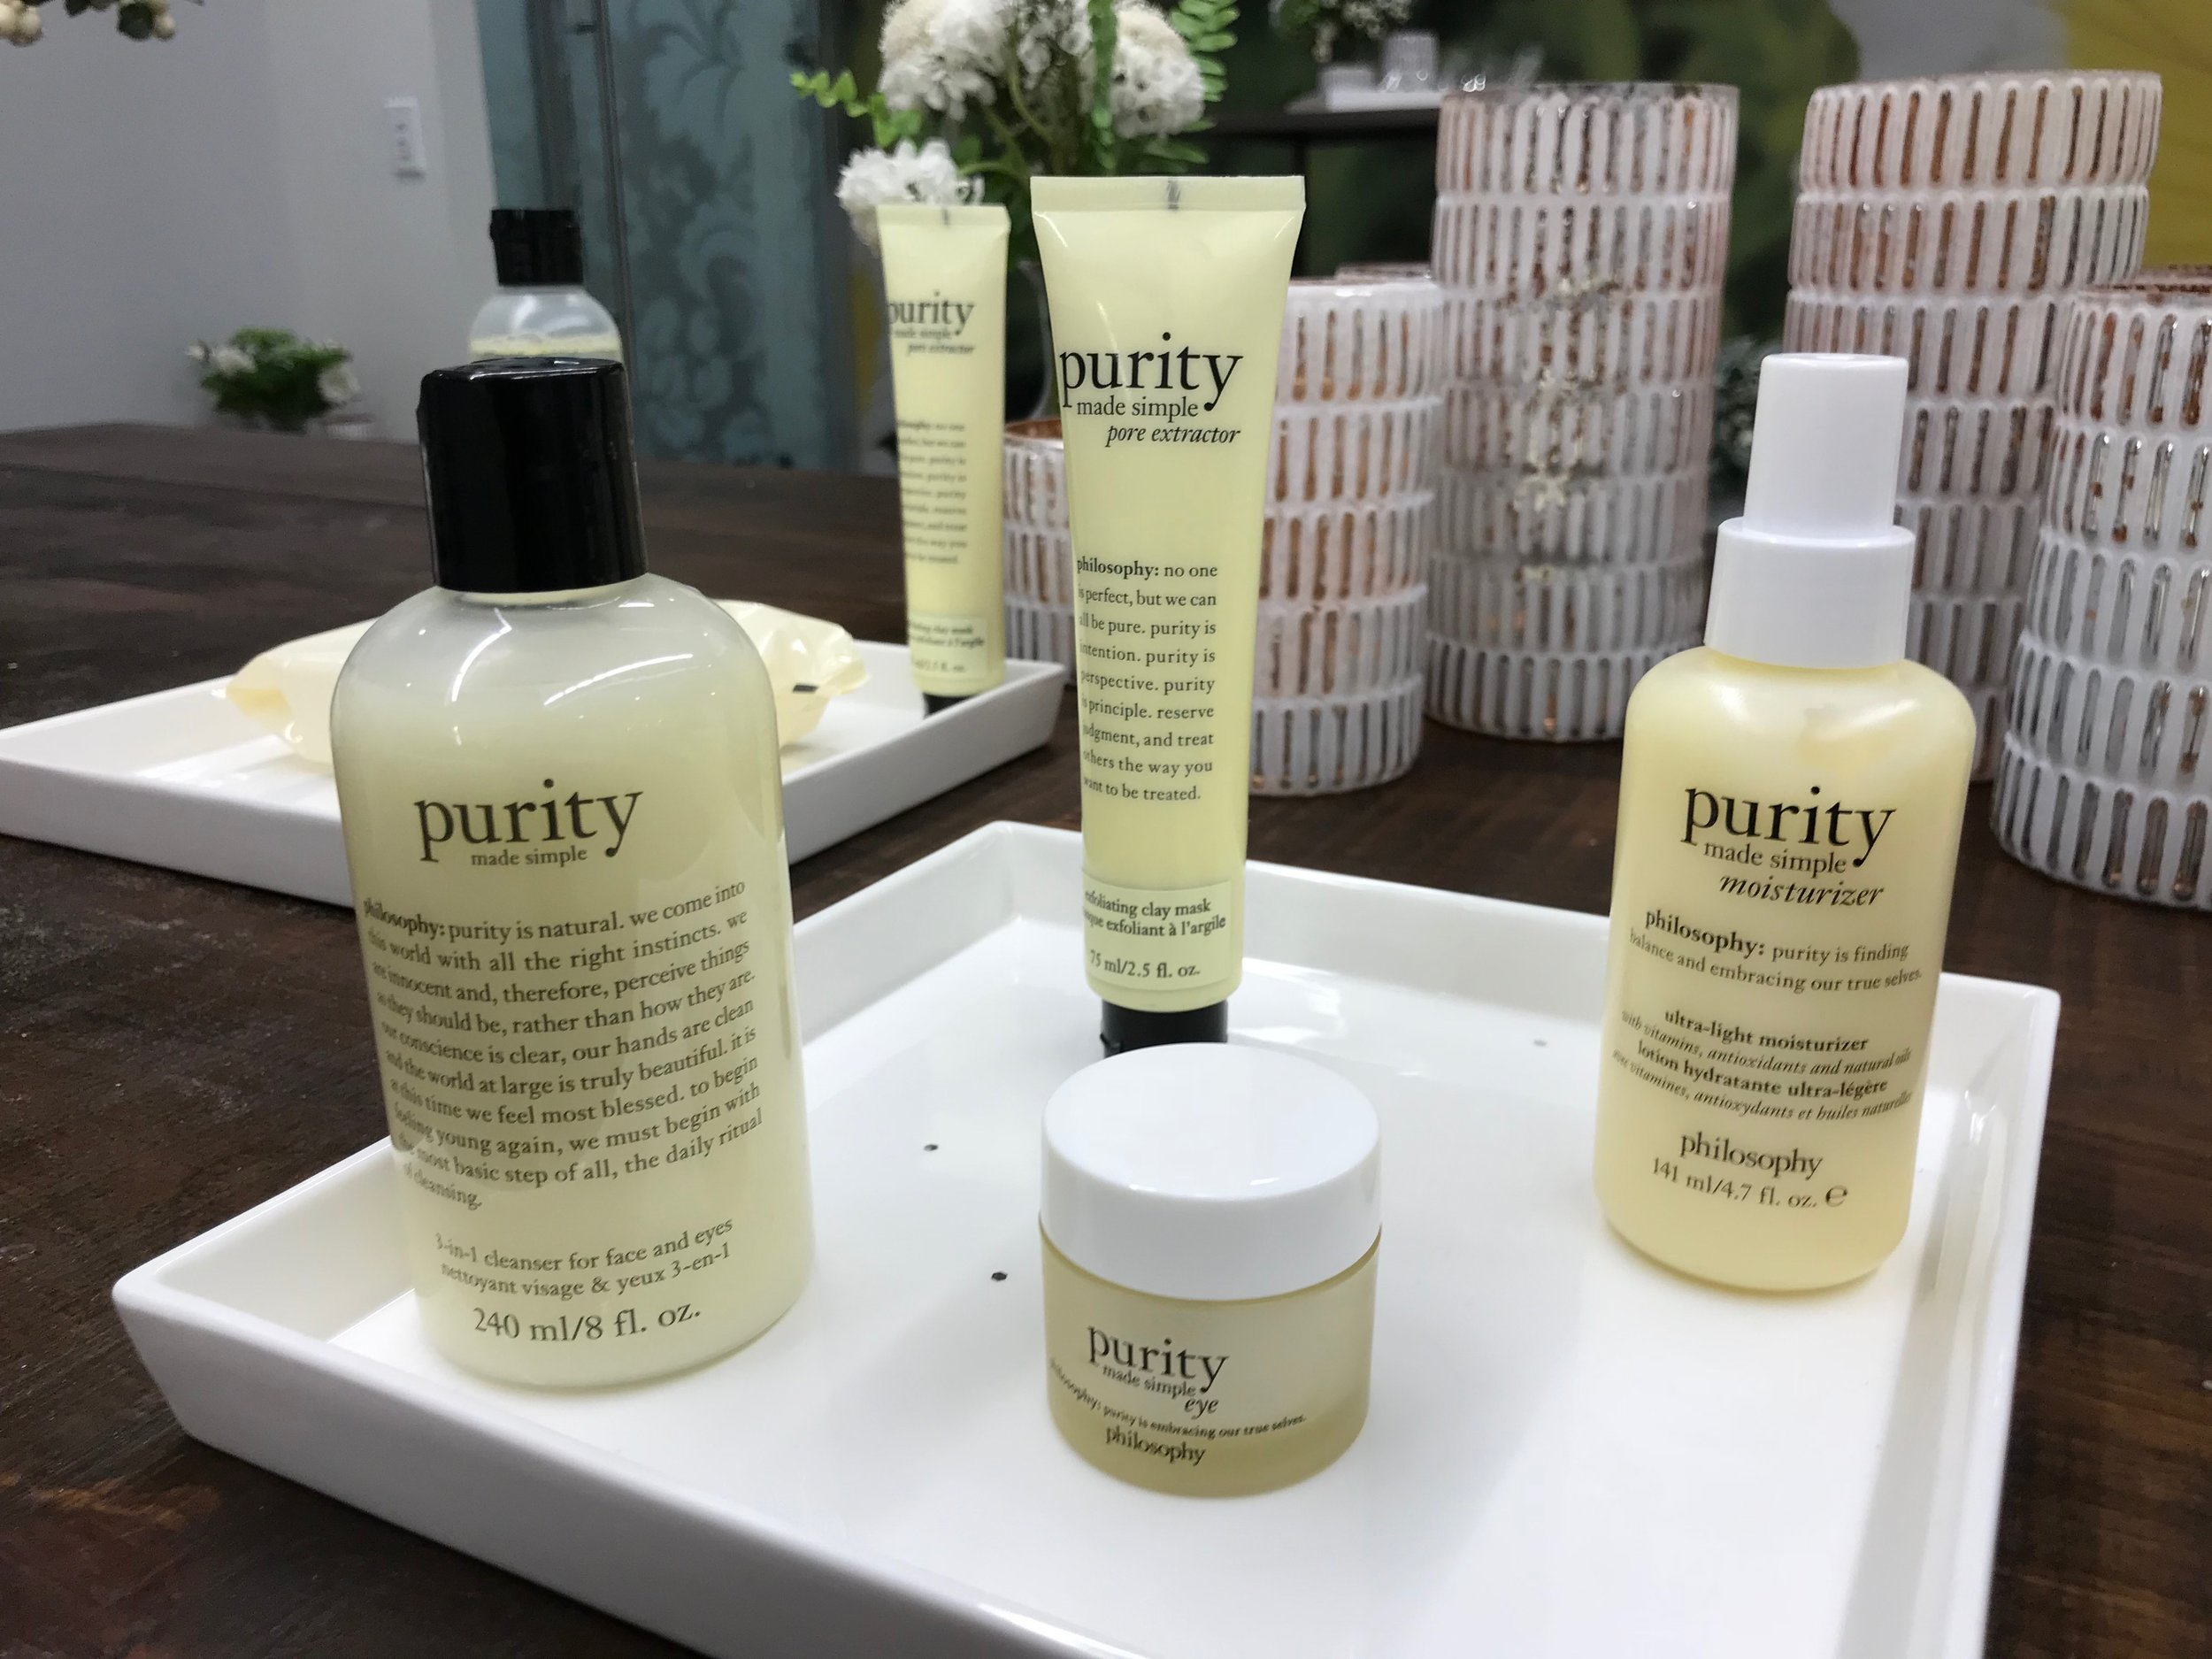 The Purity line will be adding eye cream to their collection.